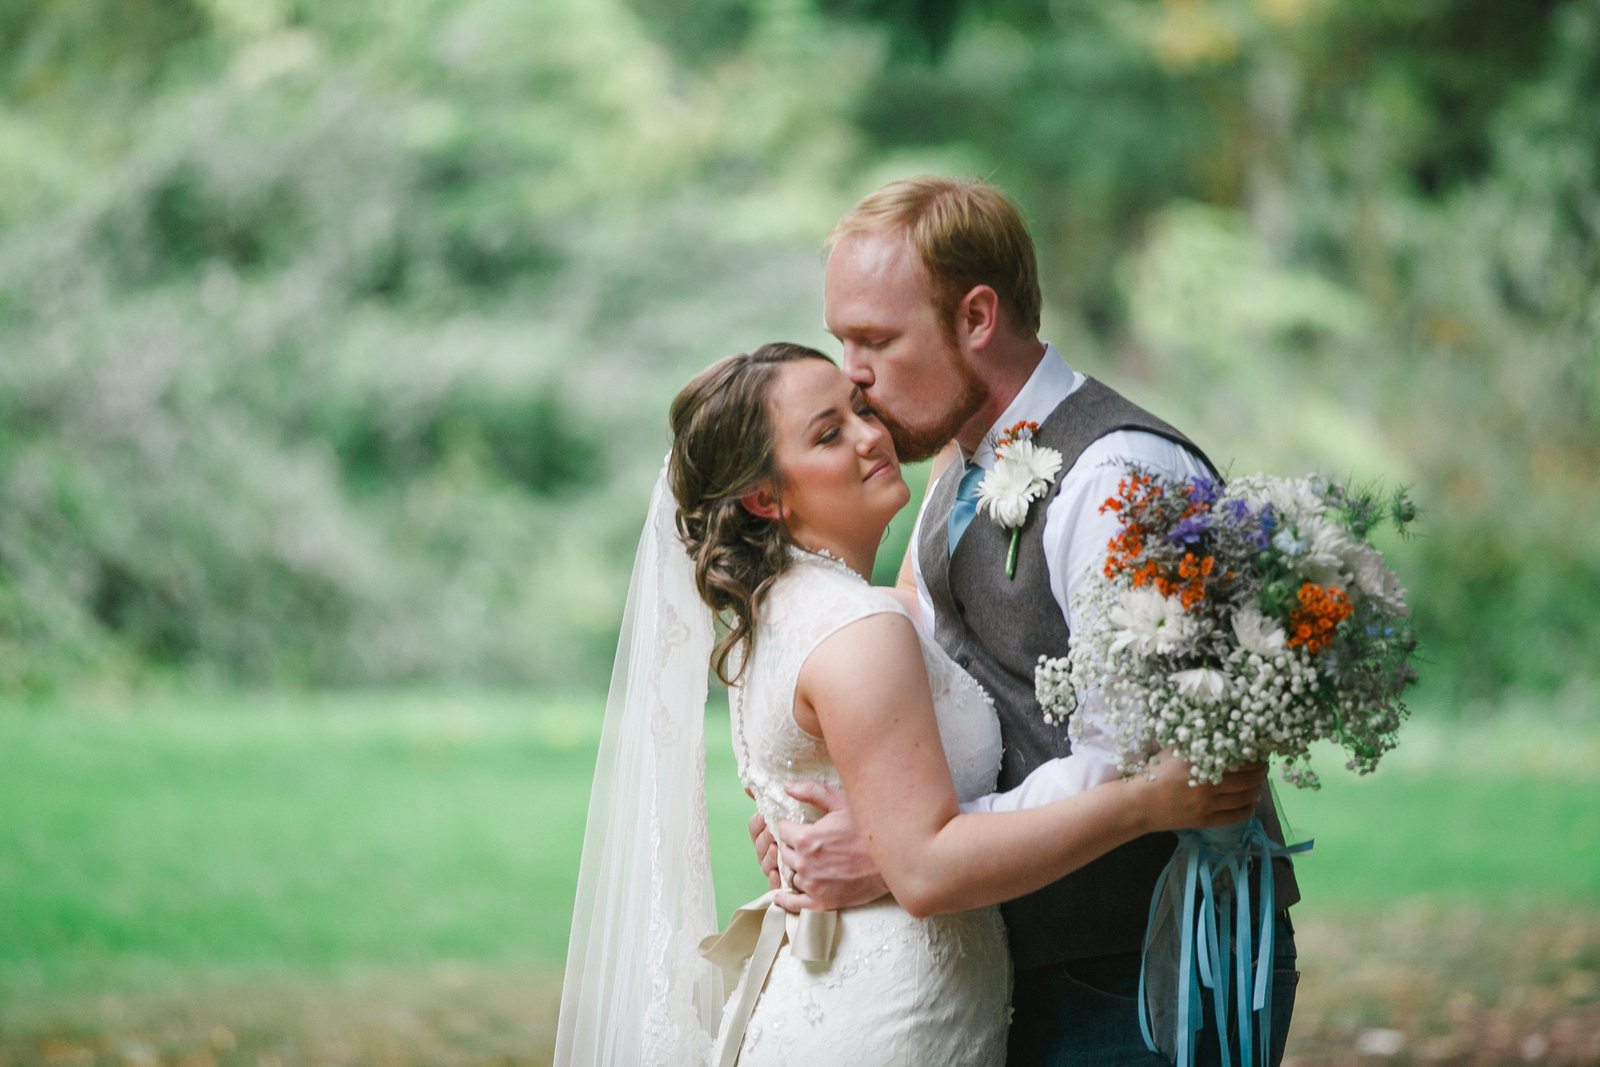 photo of Gresham Oregon wedding with bride and groom embracing outdoors | Susie Moreno Photography